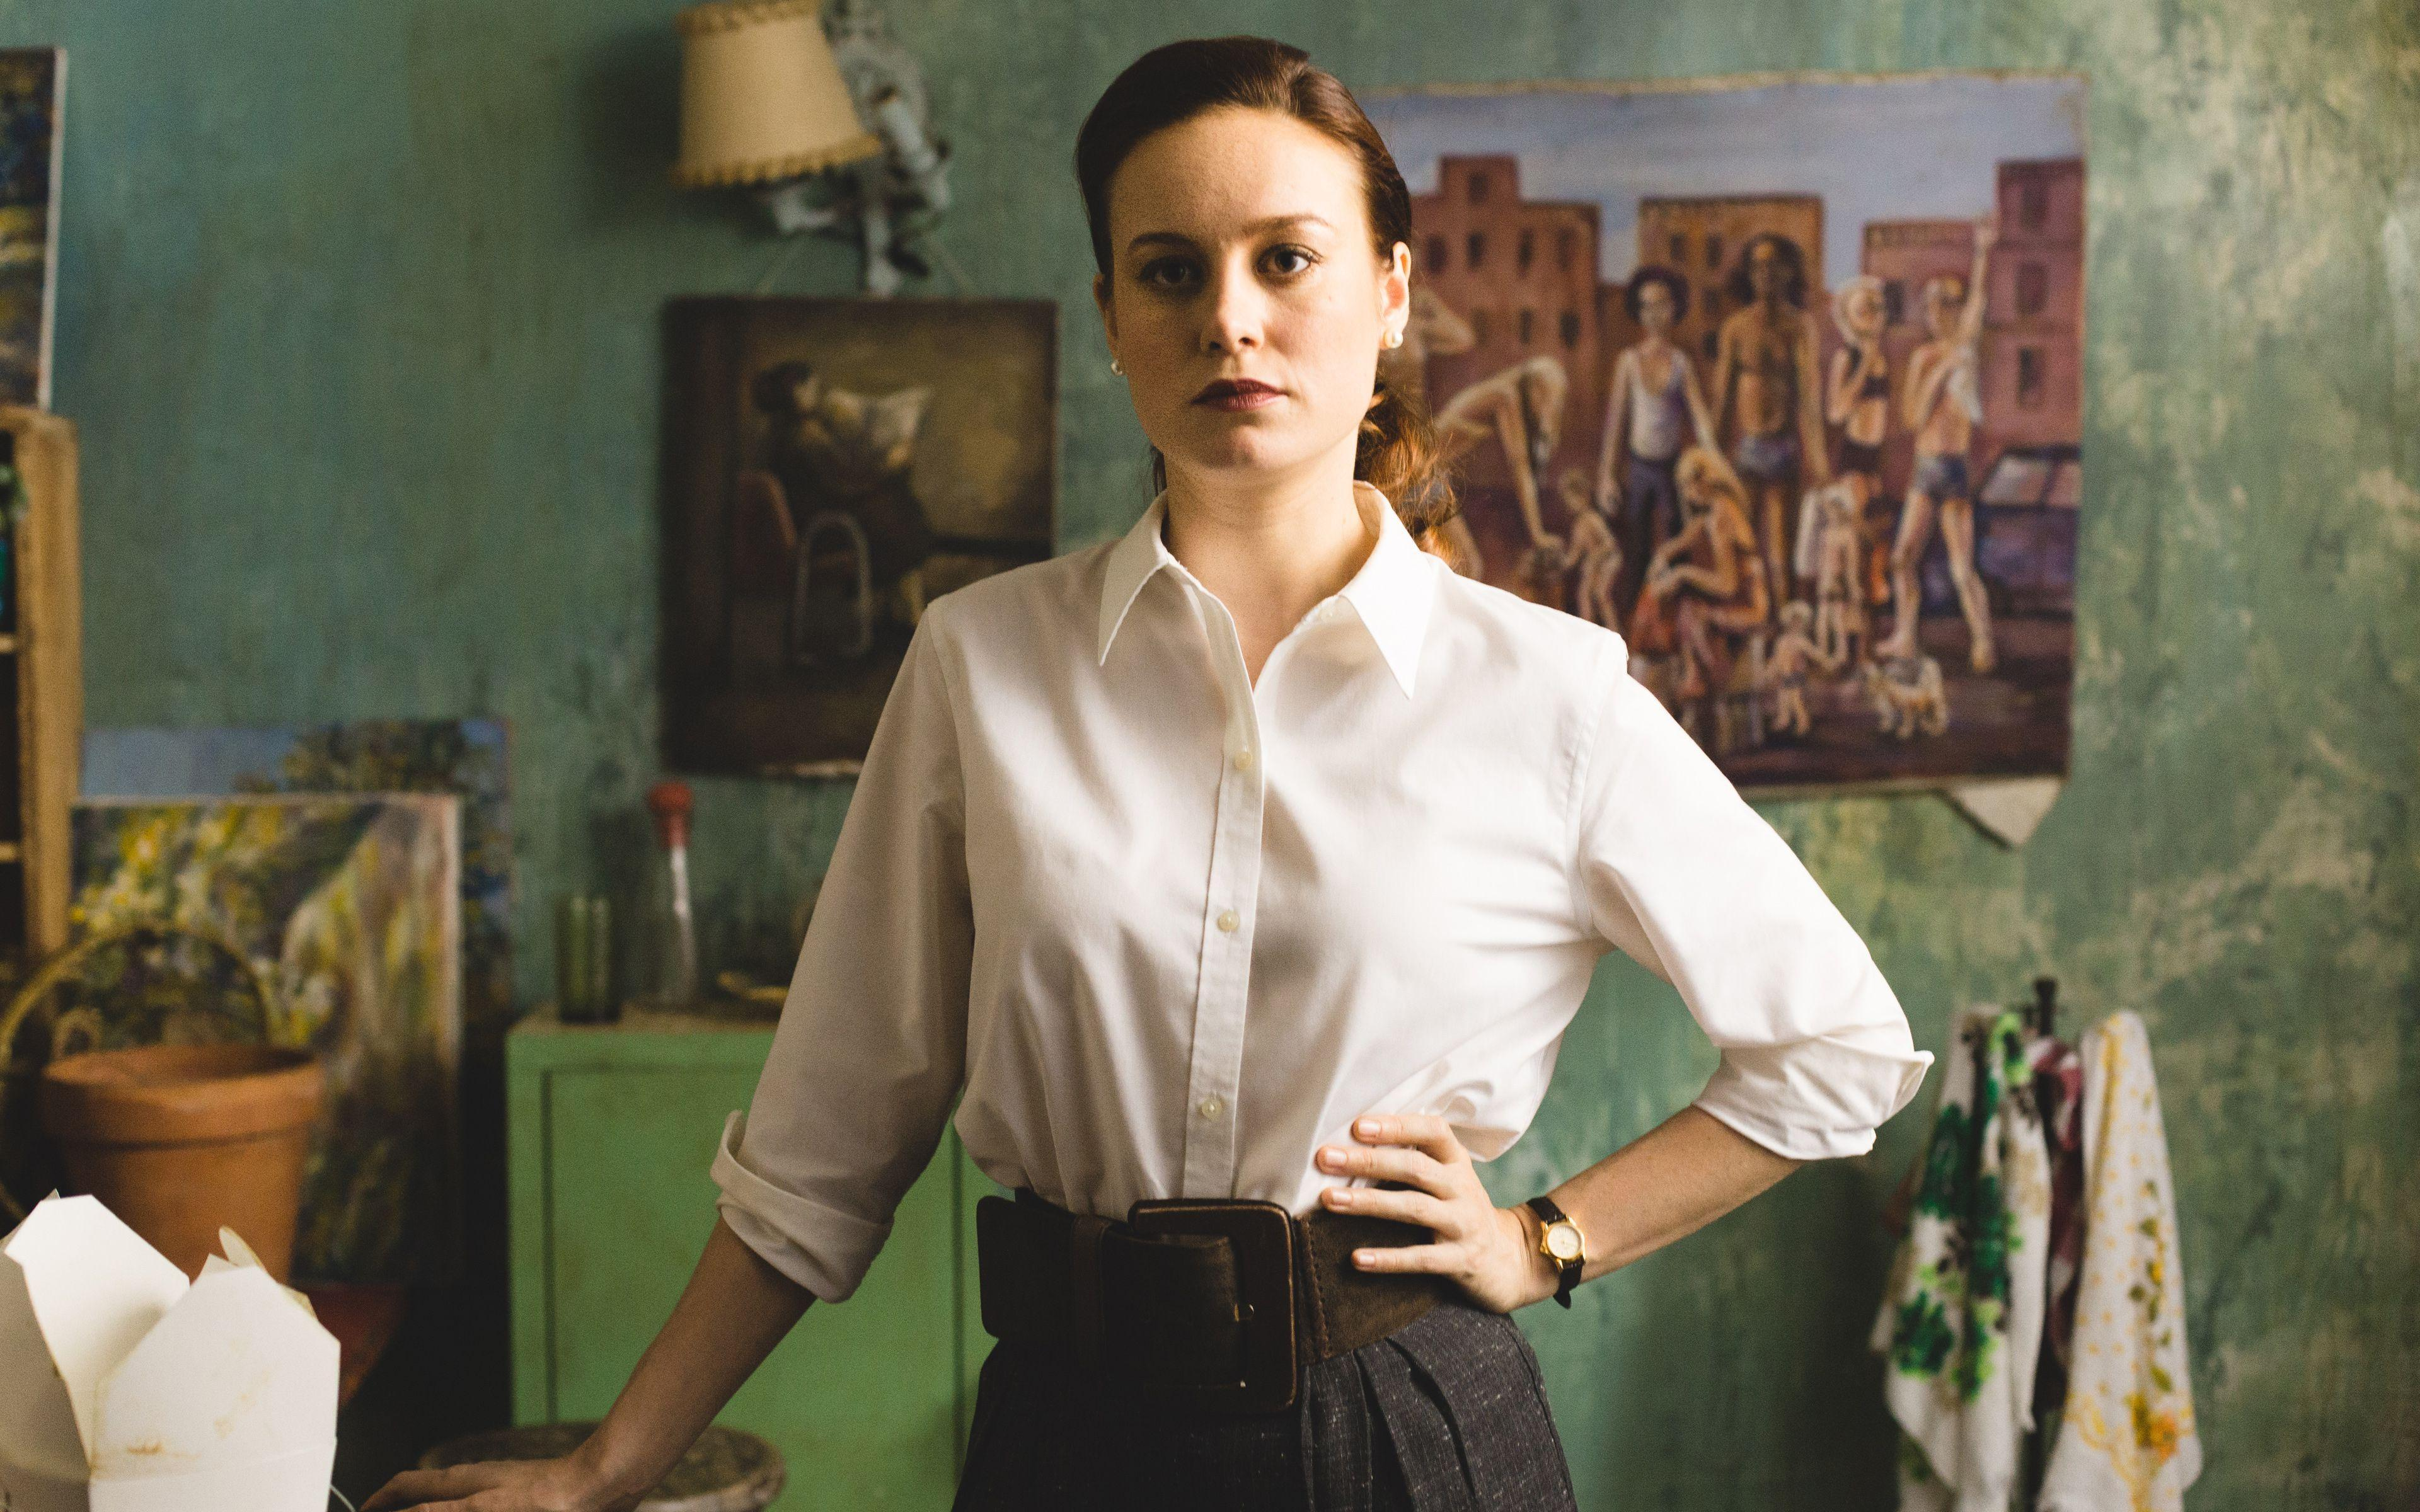 Brie Larson in The Glass Castle 4K Wallpapers | HD Wallpapers